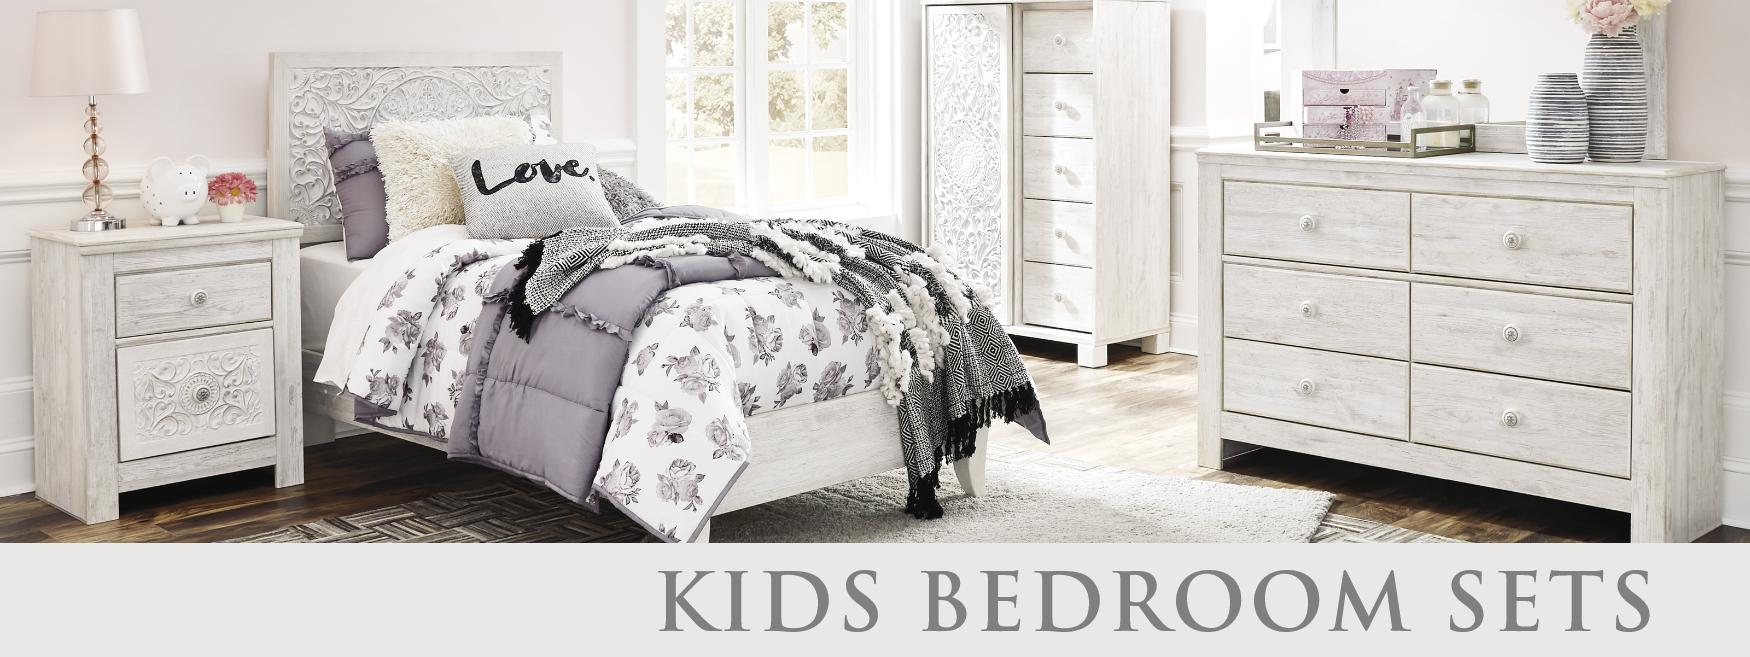 Kid Bedroom Sets